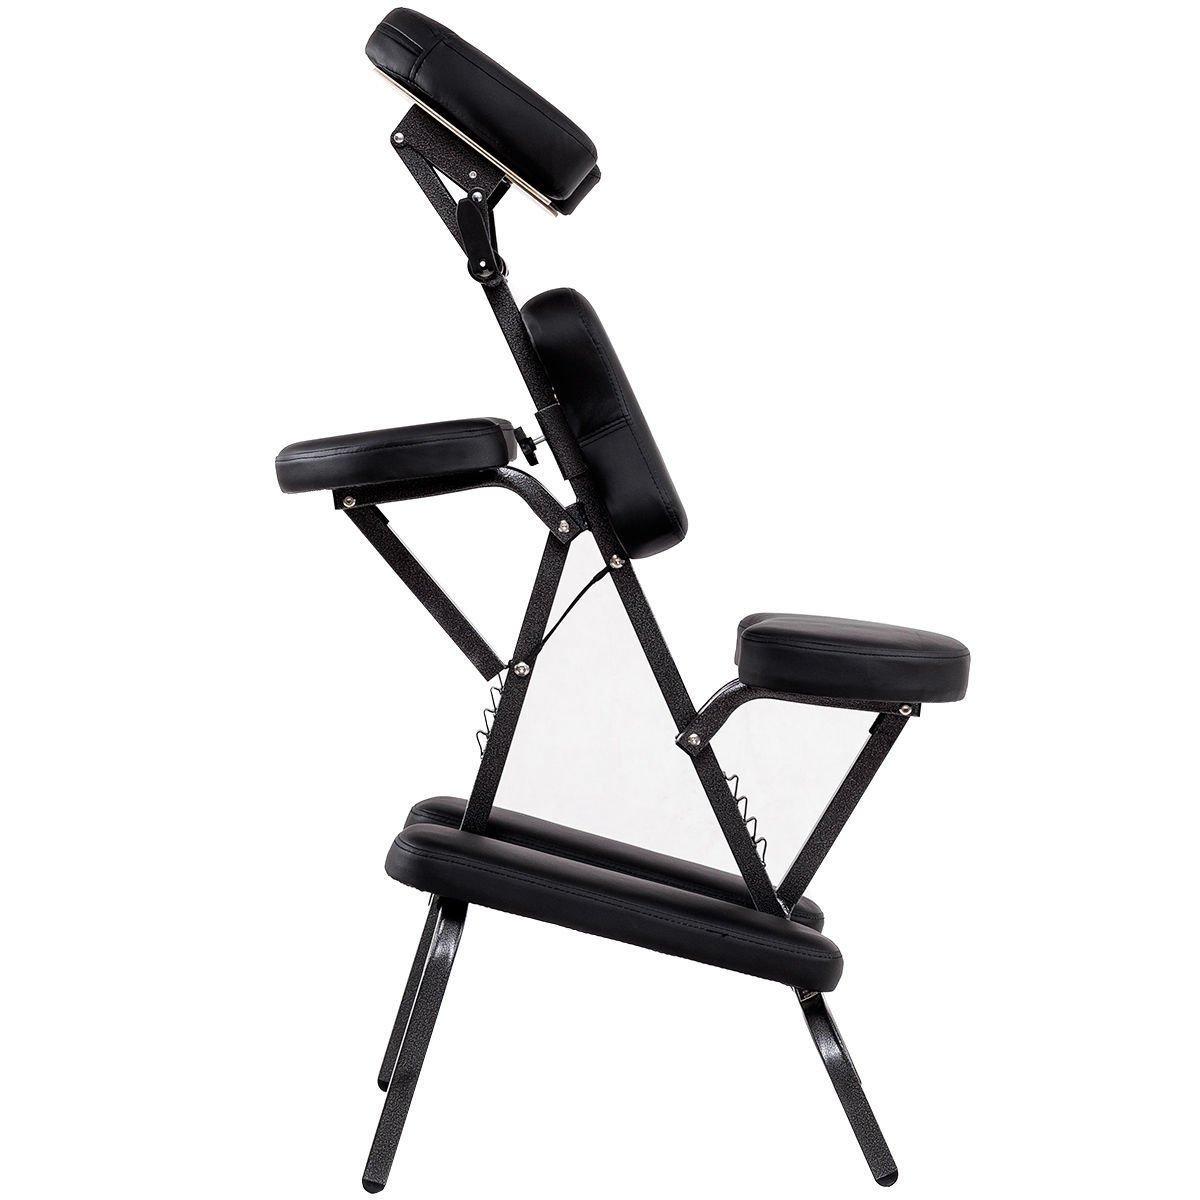 Portable PU Leather Pad Travel Massage Tattoo Spa Chair W/Carrying Bag Black by Allblessings (Image #4)